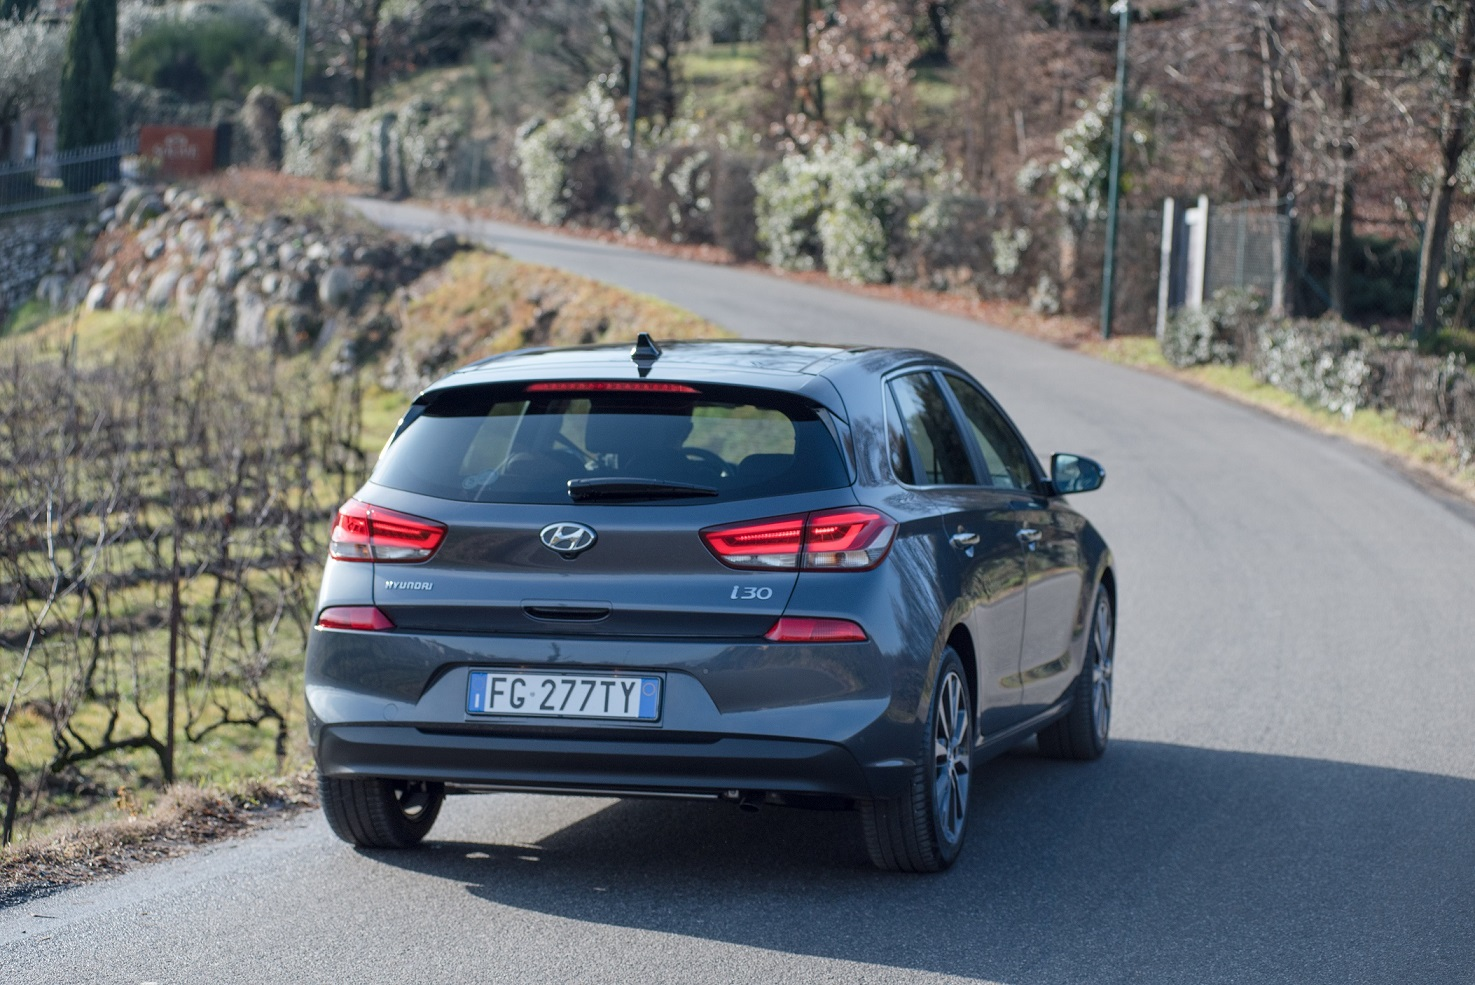 New Generation i30_Rear